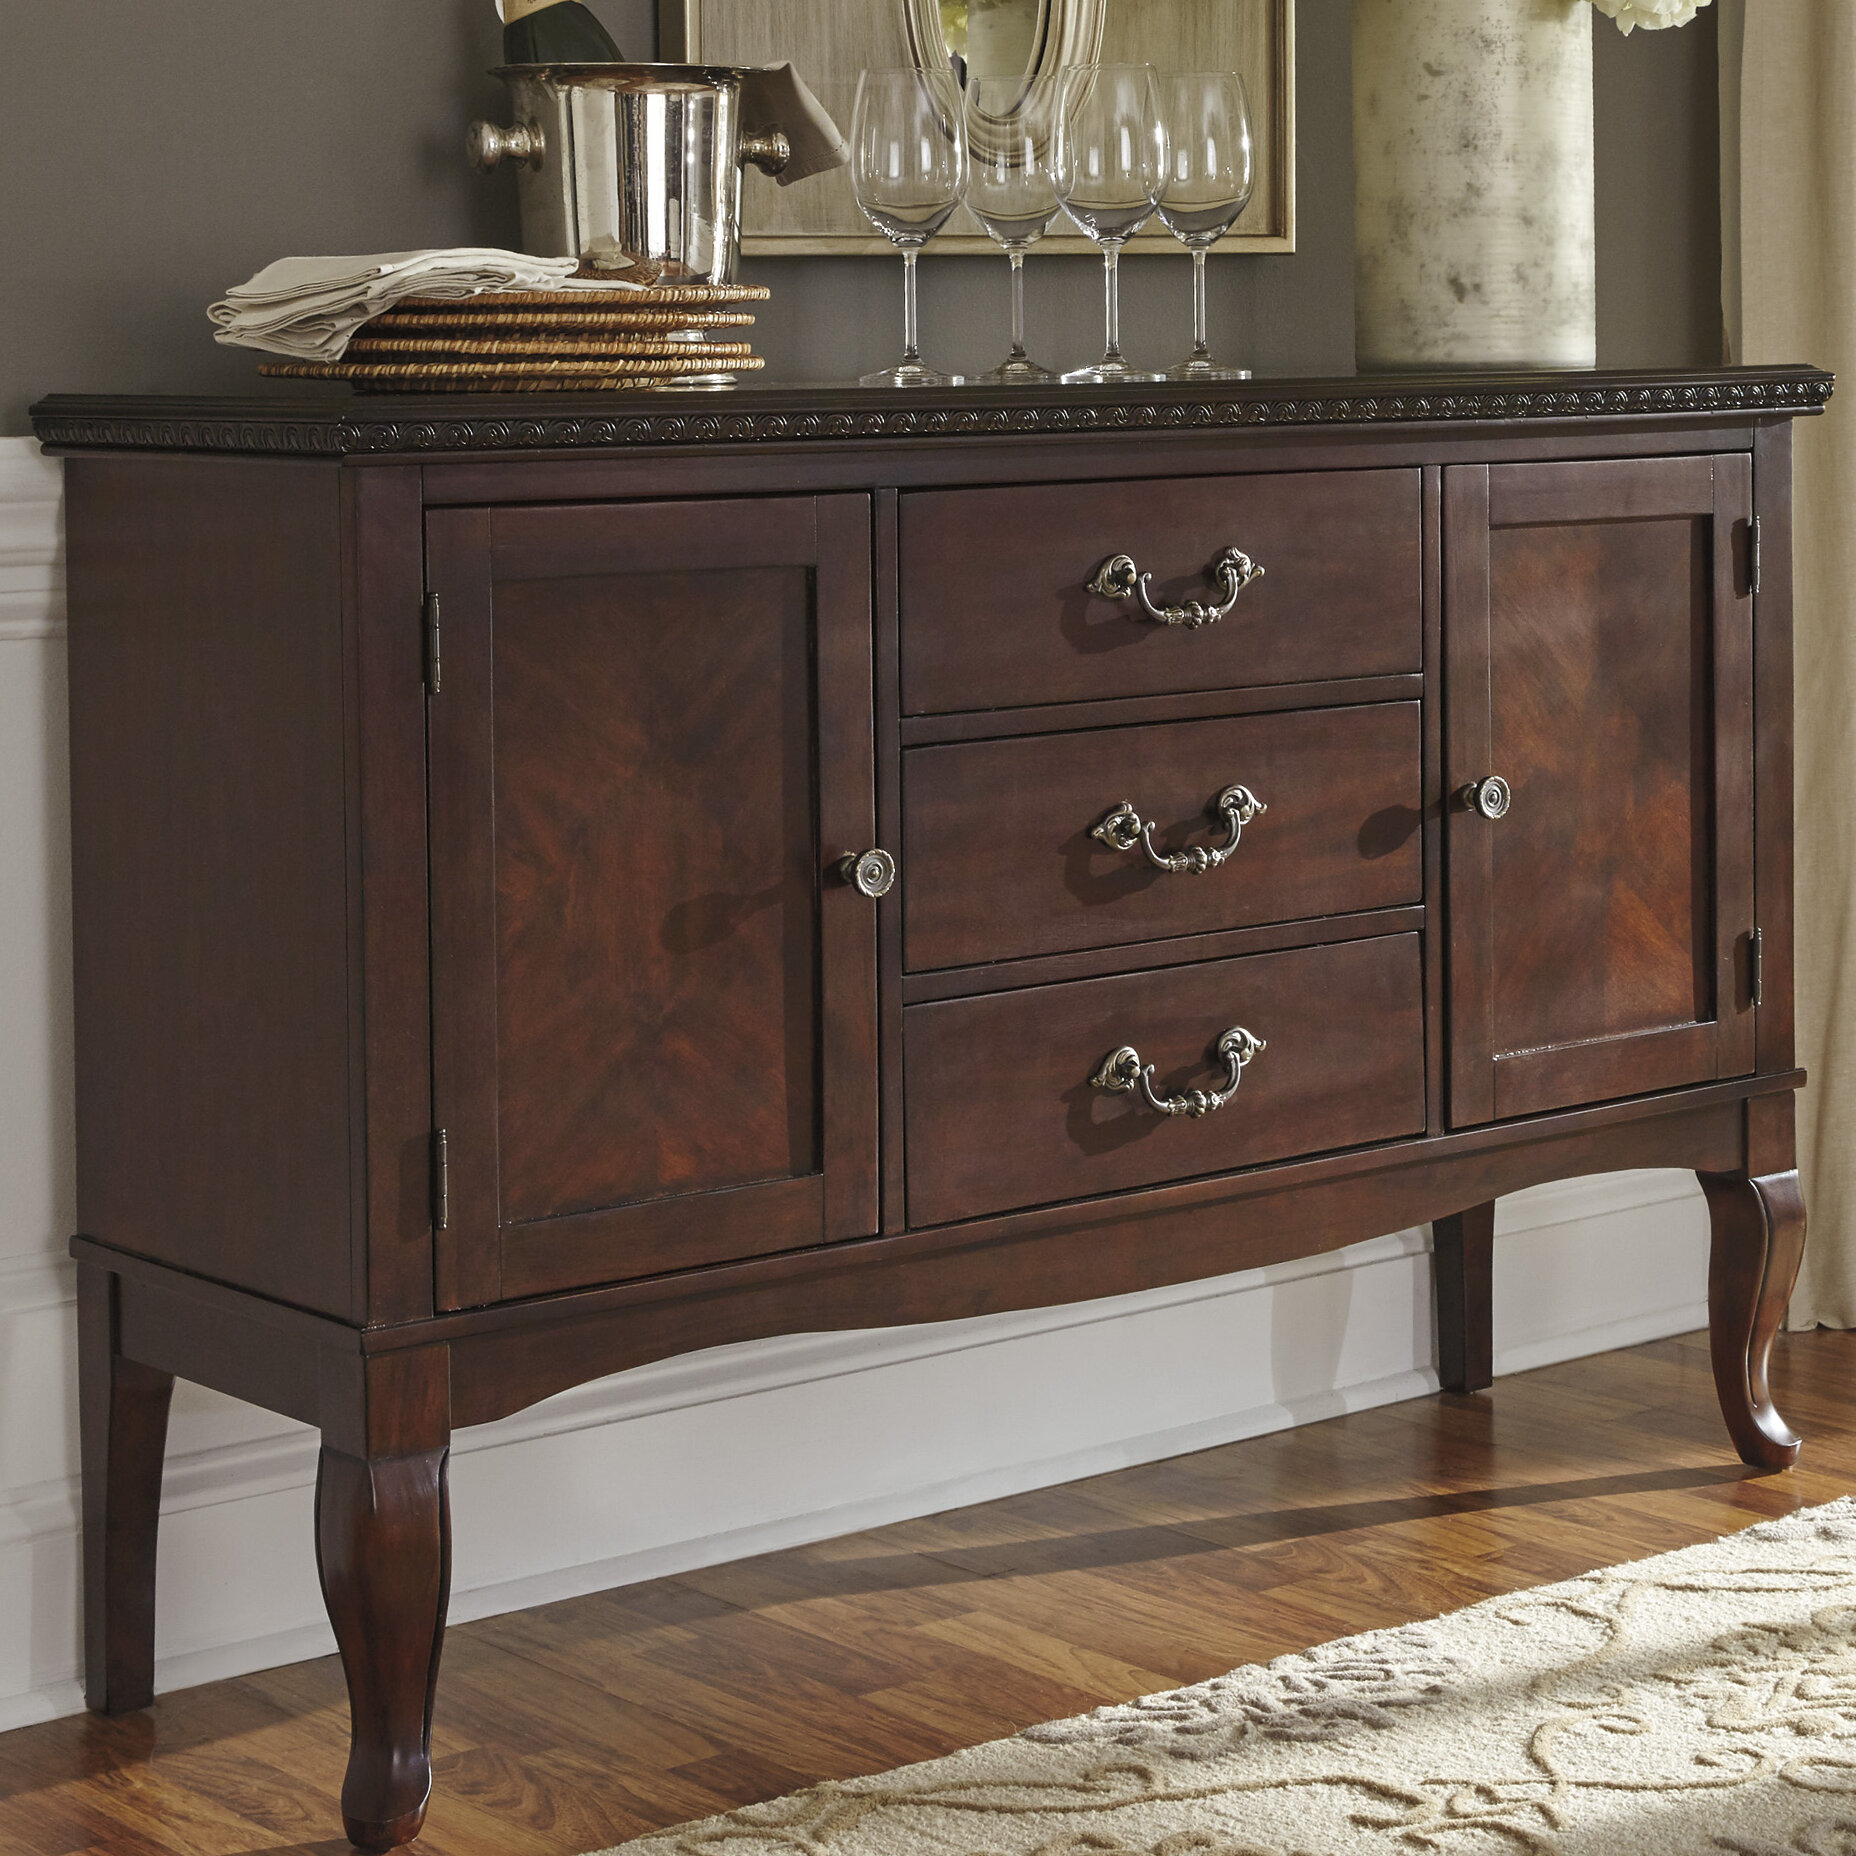 Amazing Astoria Grand Beddingfield Dining Room Sideboard U0026 Reviews | Wayfair